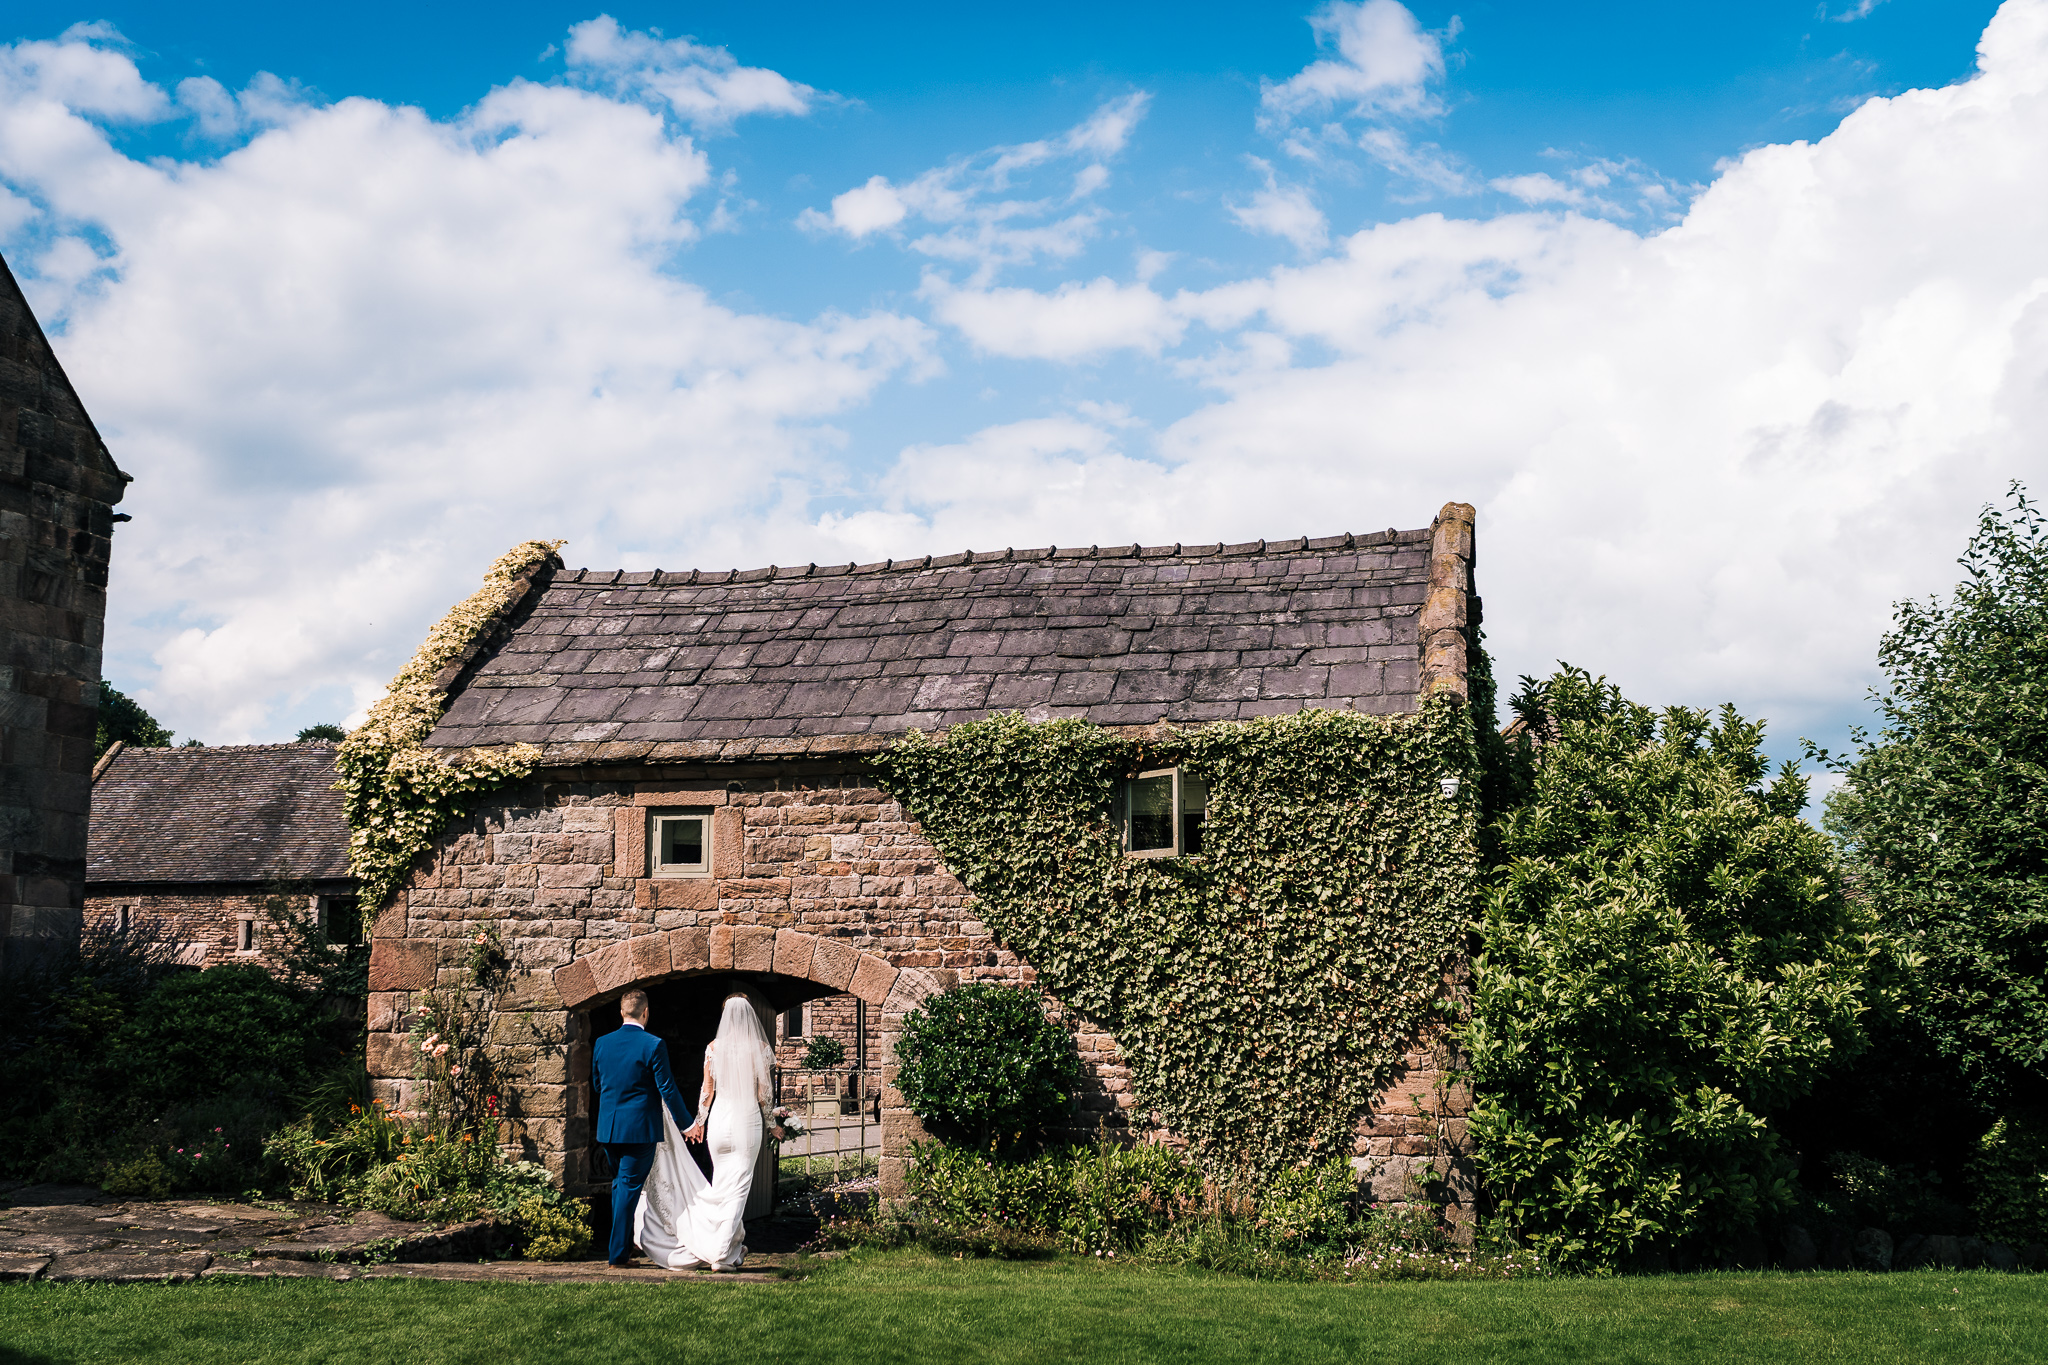 SUMMER WEDDING BRIDE AND GROOM OUTDOORS WITH BLUE SKY